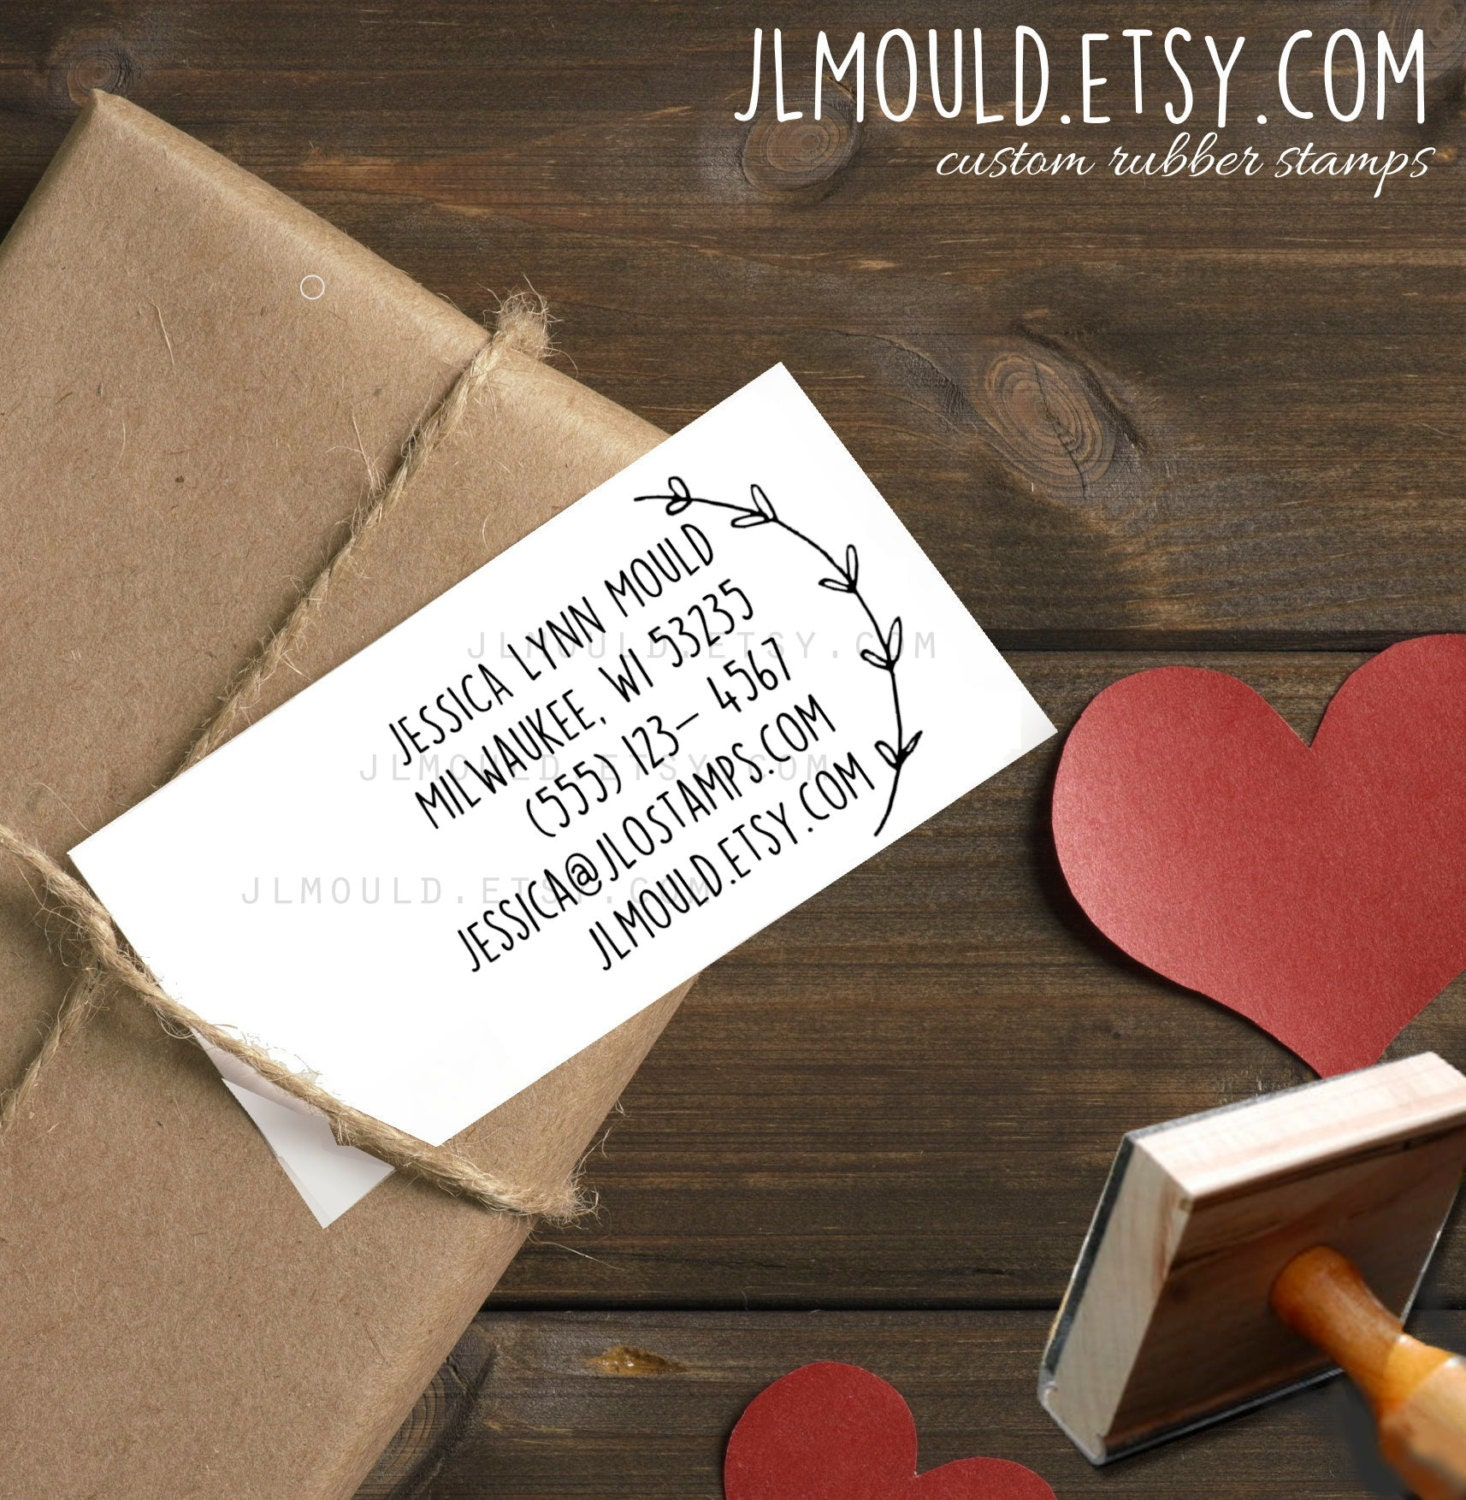 0389 jlmould custom diy business card rubber stamp with your